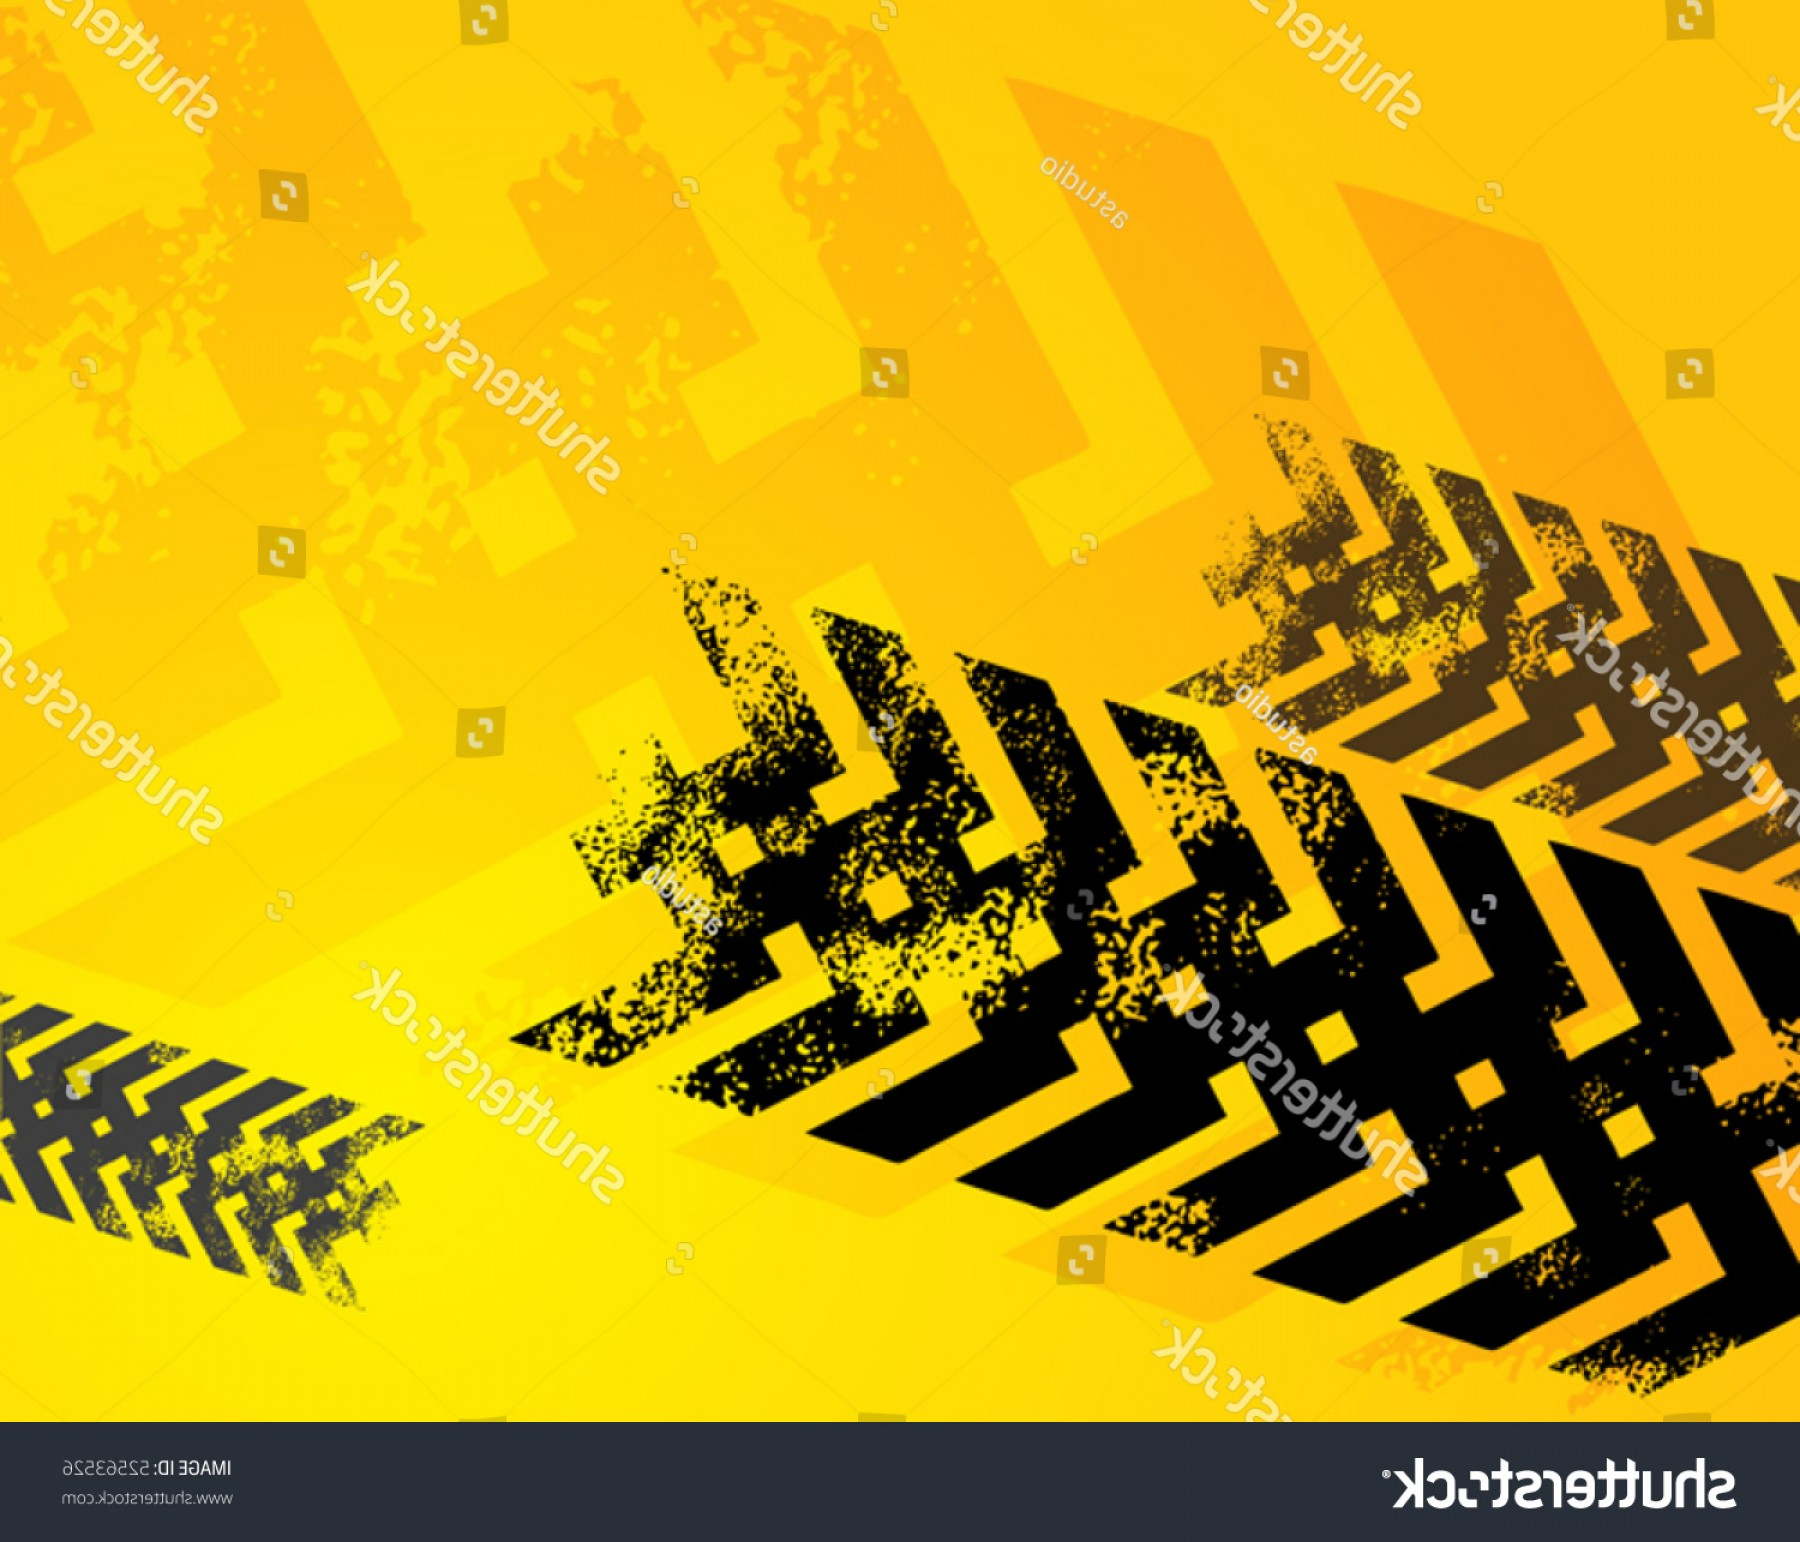 Grunge Background Vector Graphic: Abstract Grunge Background Vector Illustration